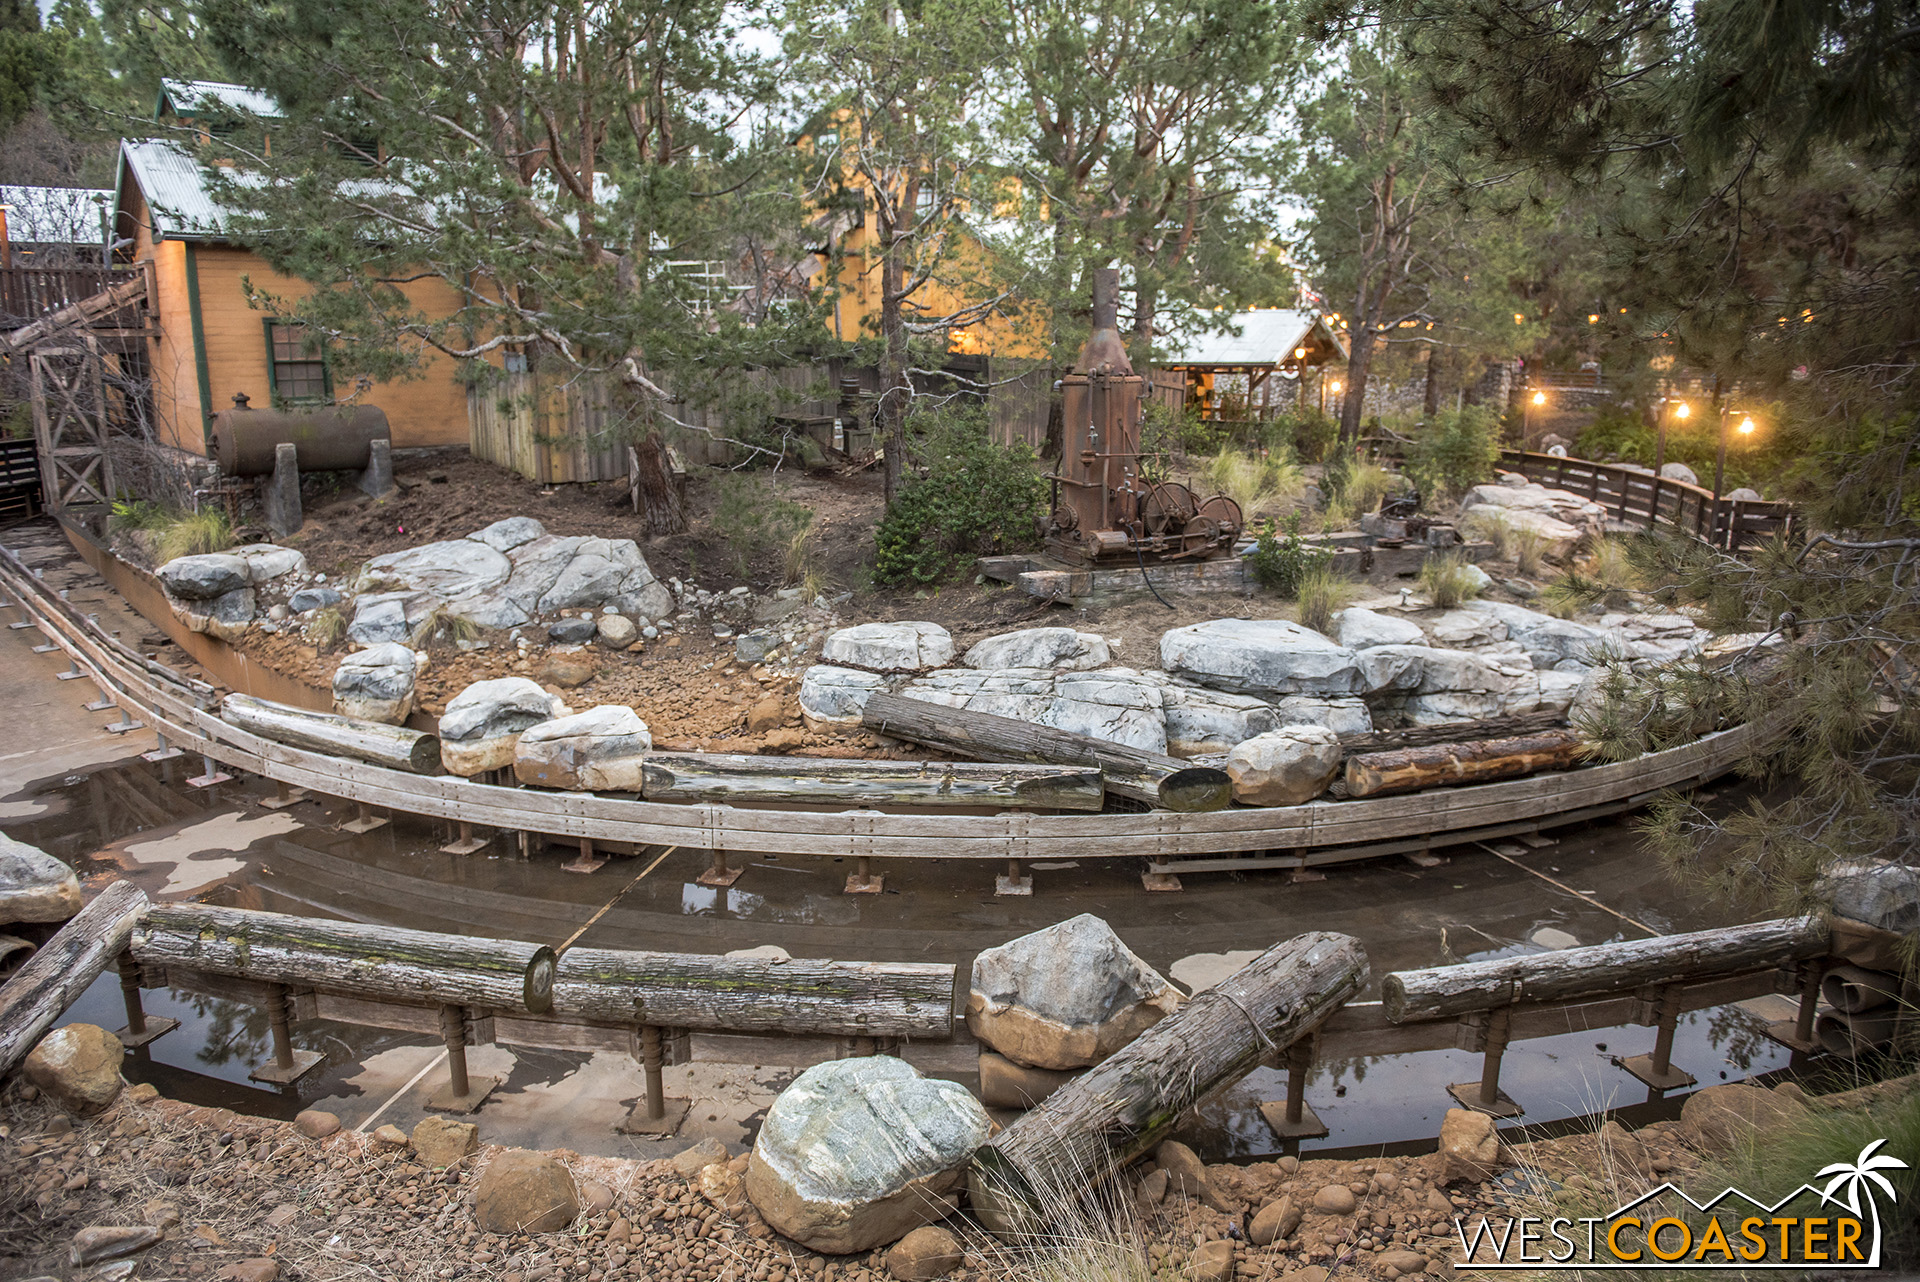 Grizzly River Run is due to reopen at the end of this month, on Friday, March 29.